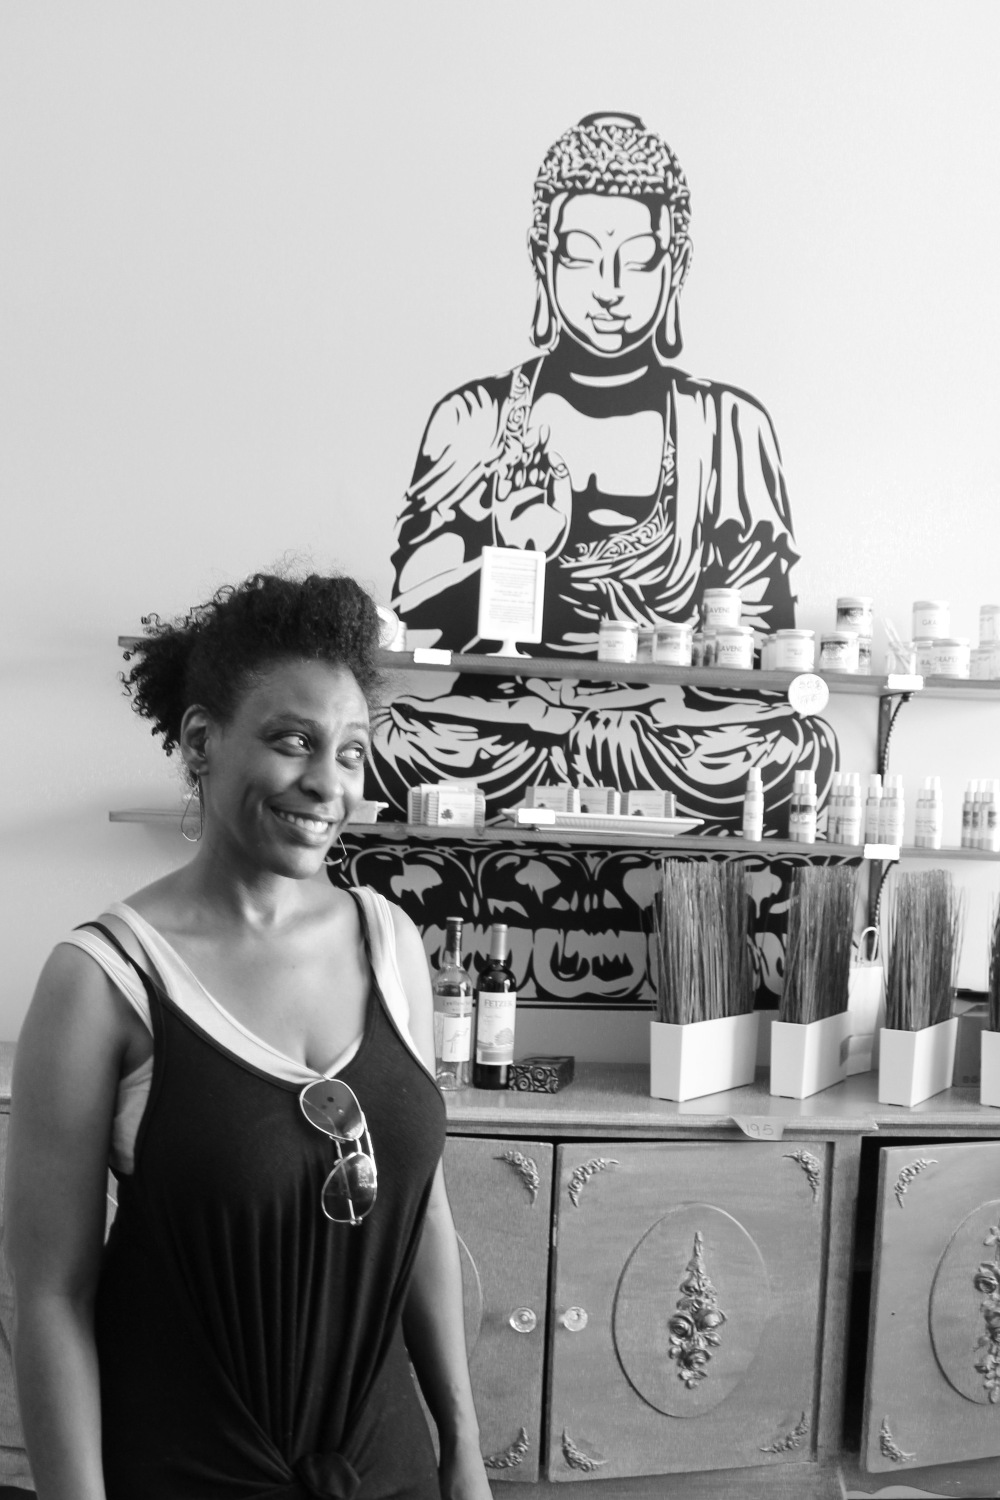 Kay smiling in her Mystical Apothecary and Creative Studio, a really interesting spot where she sells crystals, essential oils, alternative healing and more. She is an advocate for people visiting and shopping along Pico, something I which couldn't agree more with.